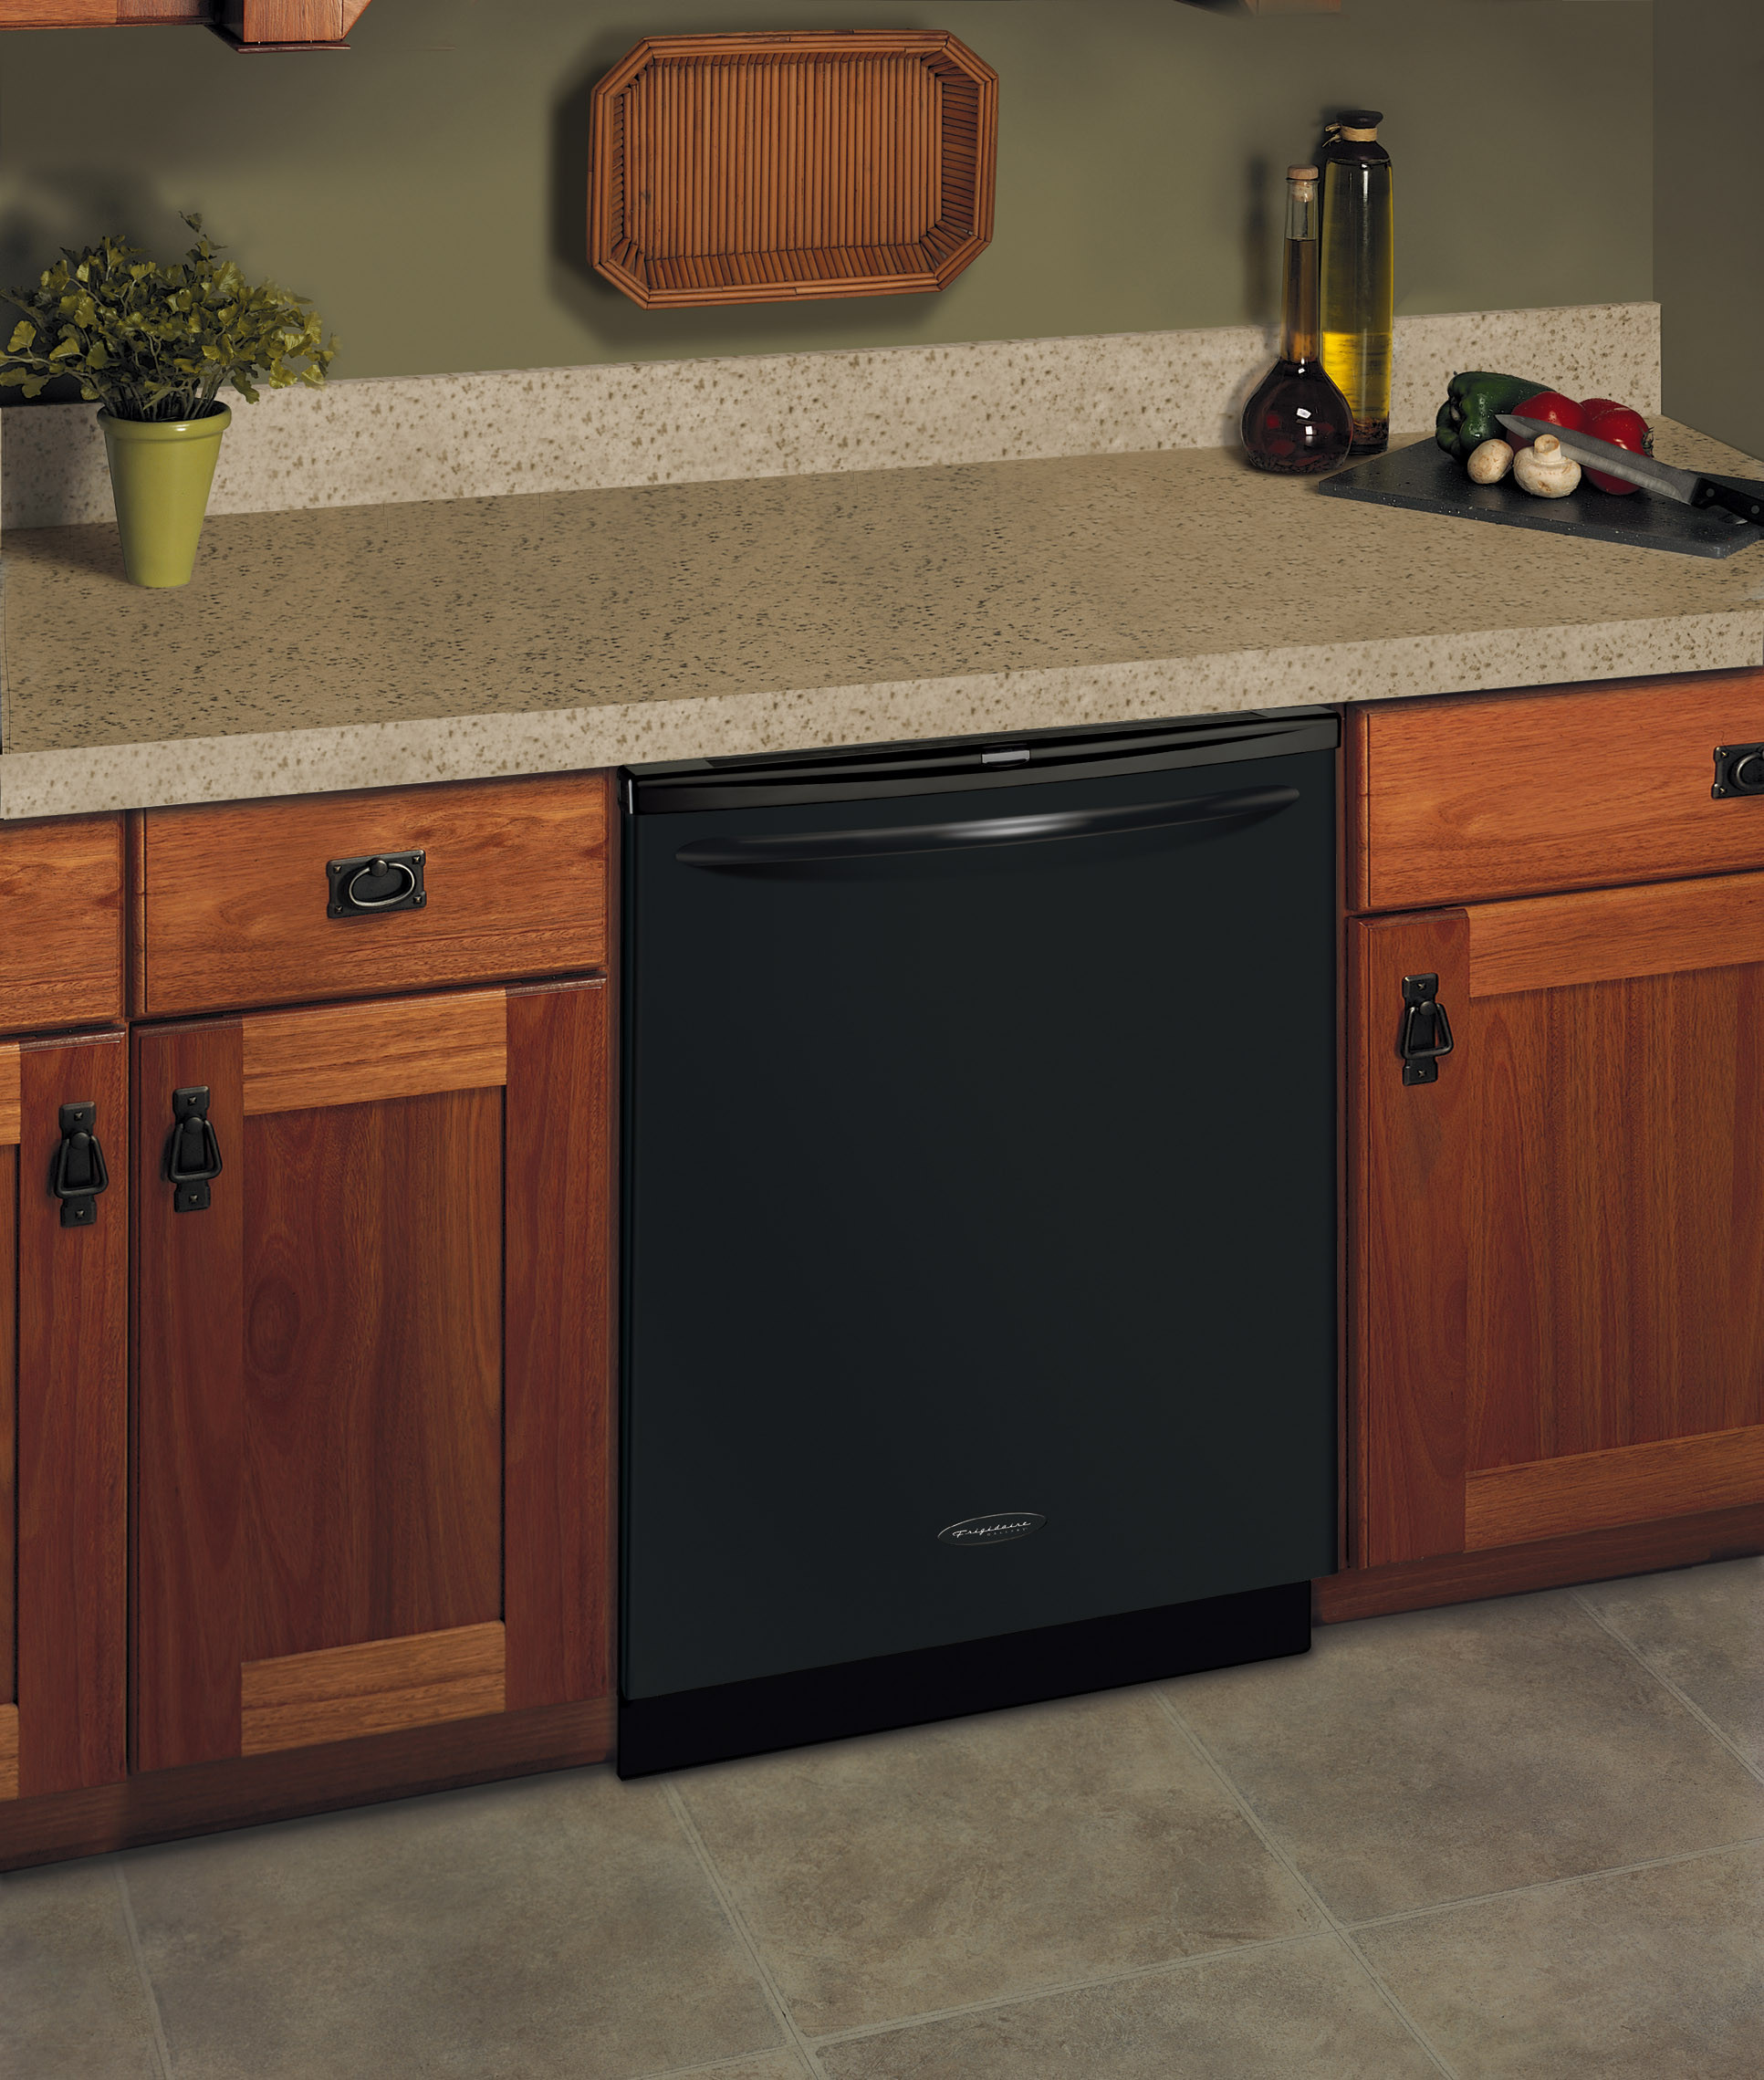 Frigidaire Gld4355rfb Fully Integrated Dishwasher With 6